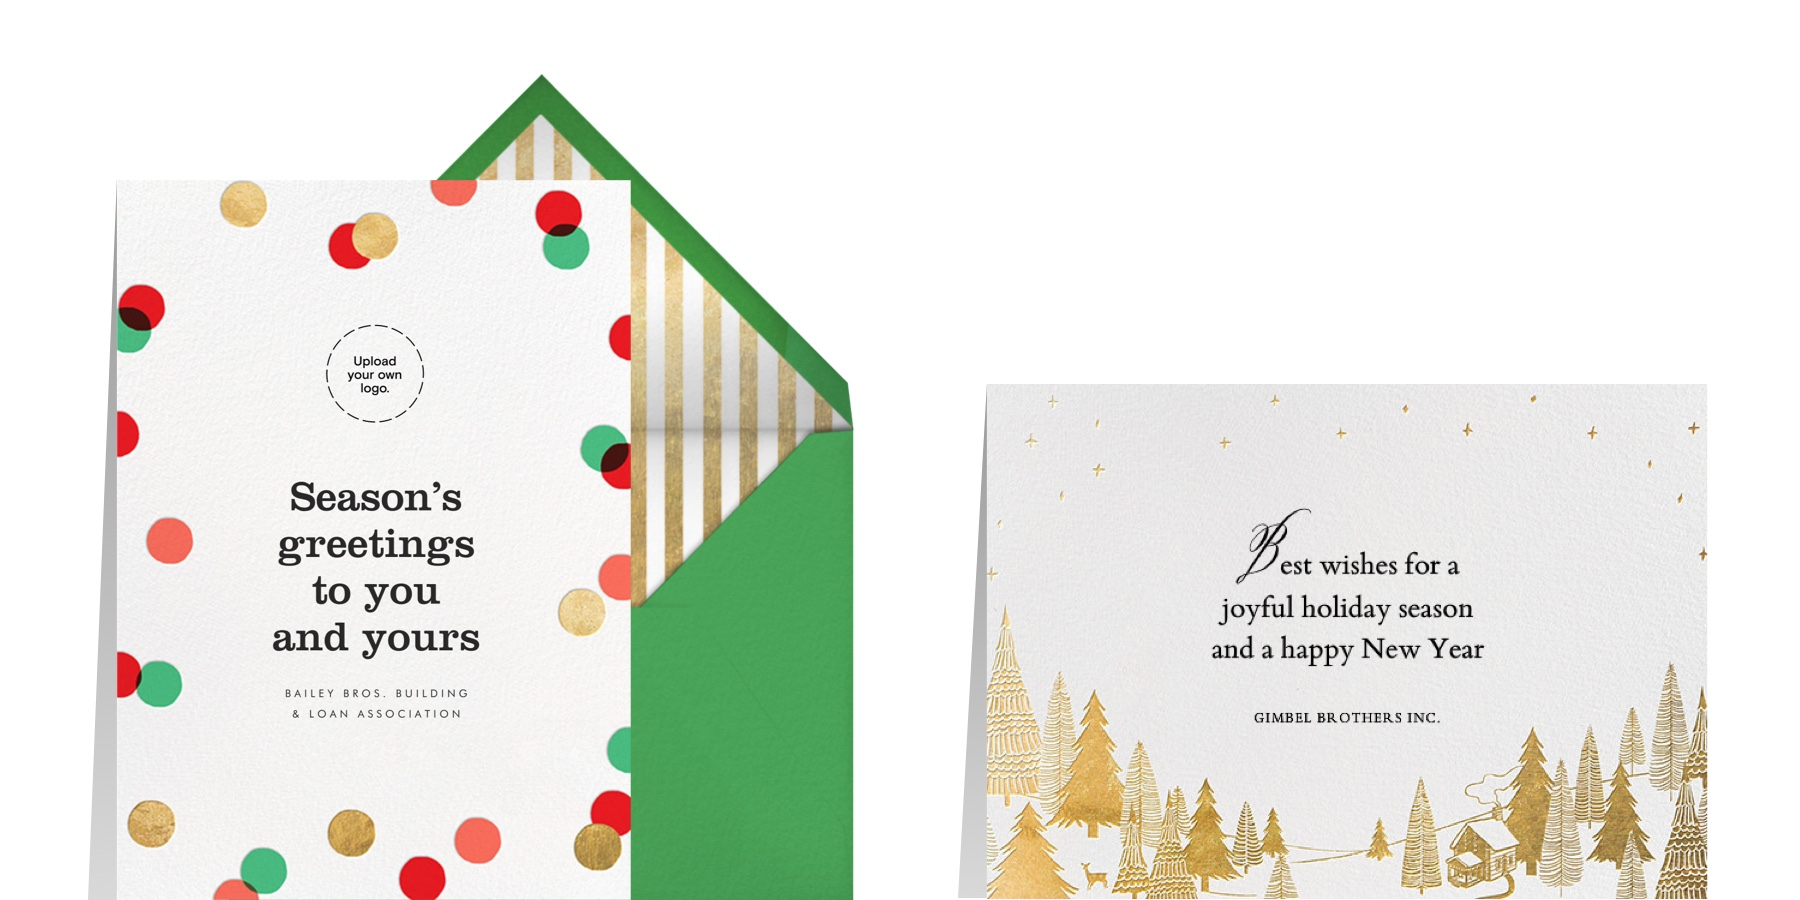 3 holiday messages and wishes to write in your holiday cards